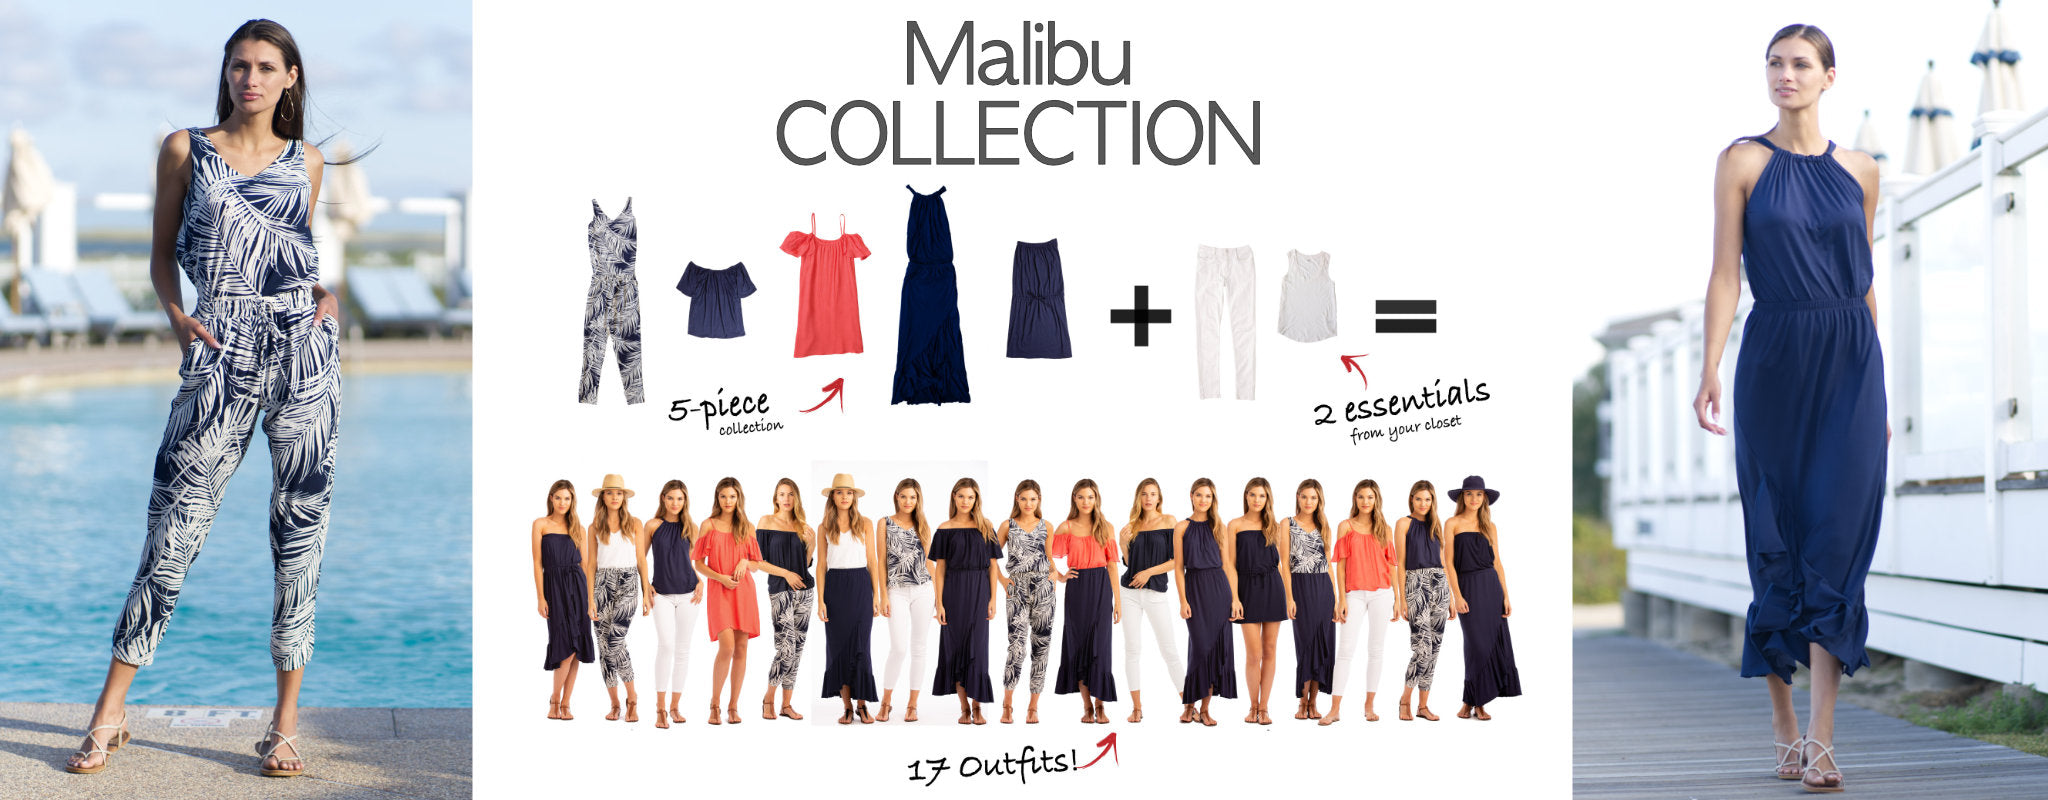 Malibu Collection: 5 items = 17 outfits